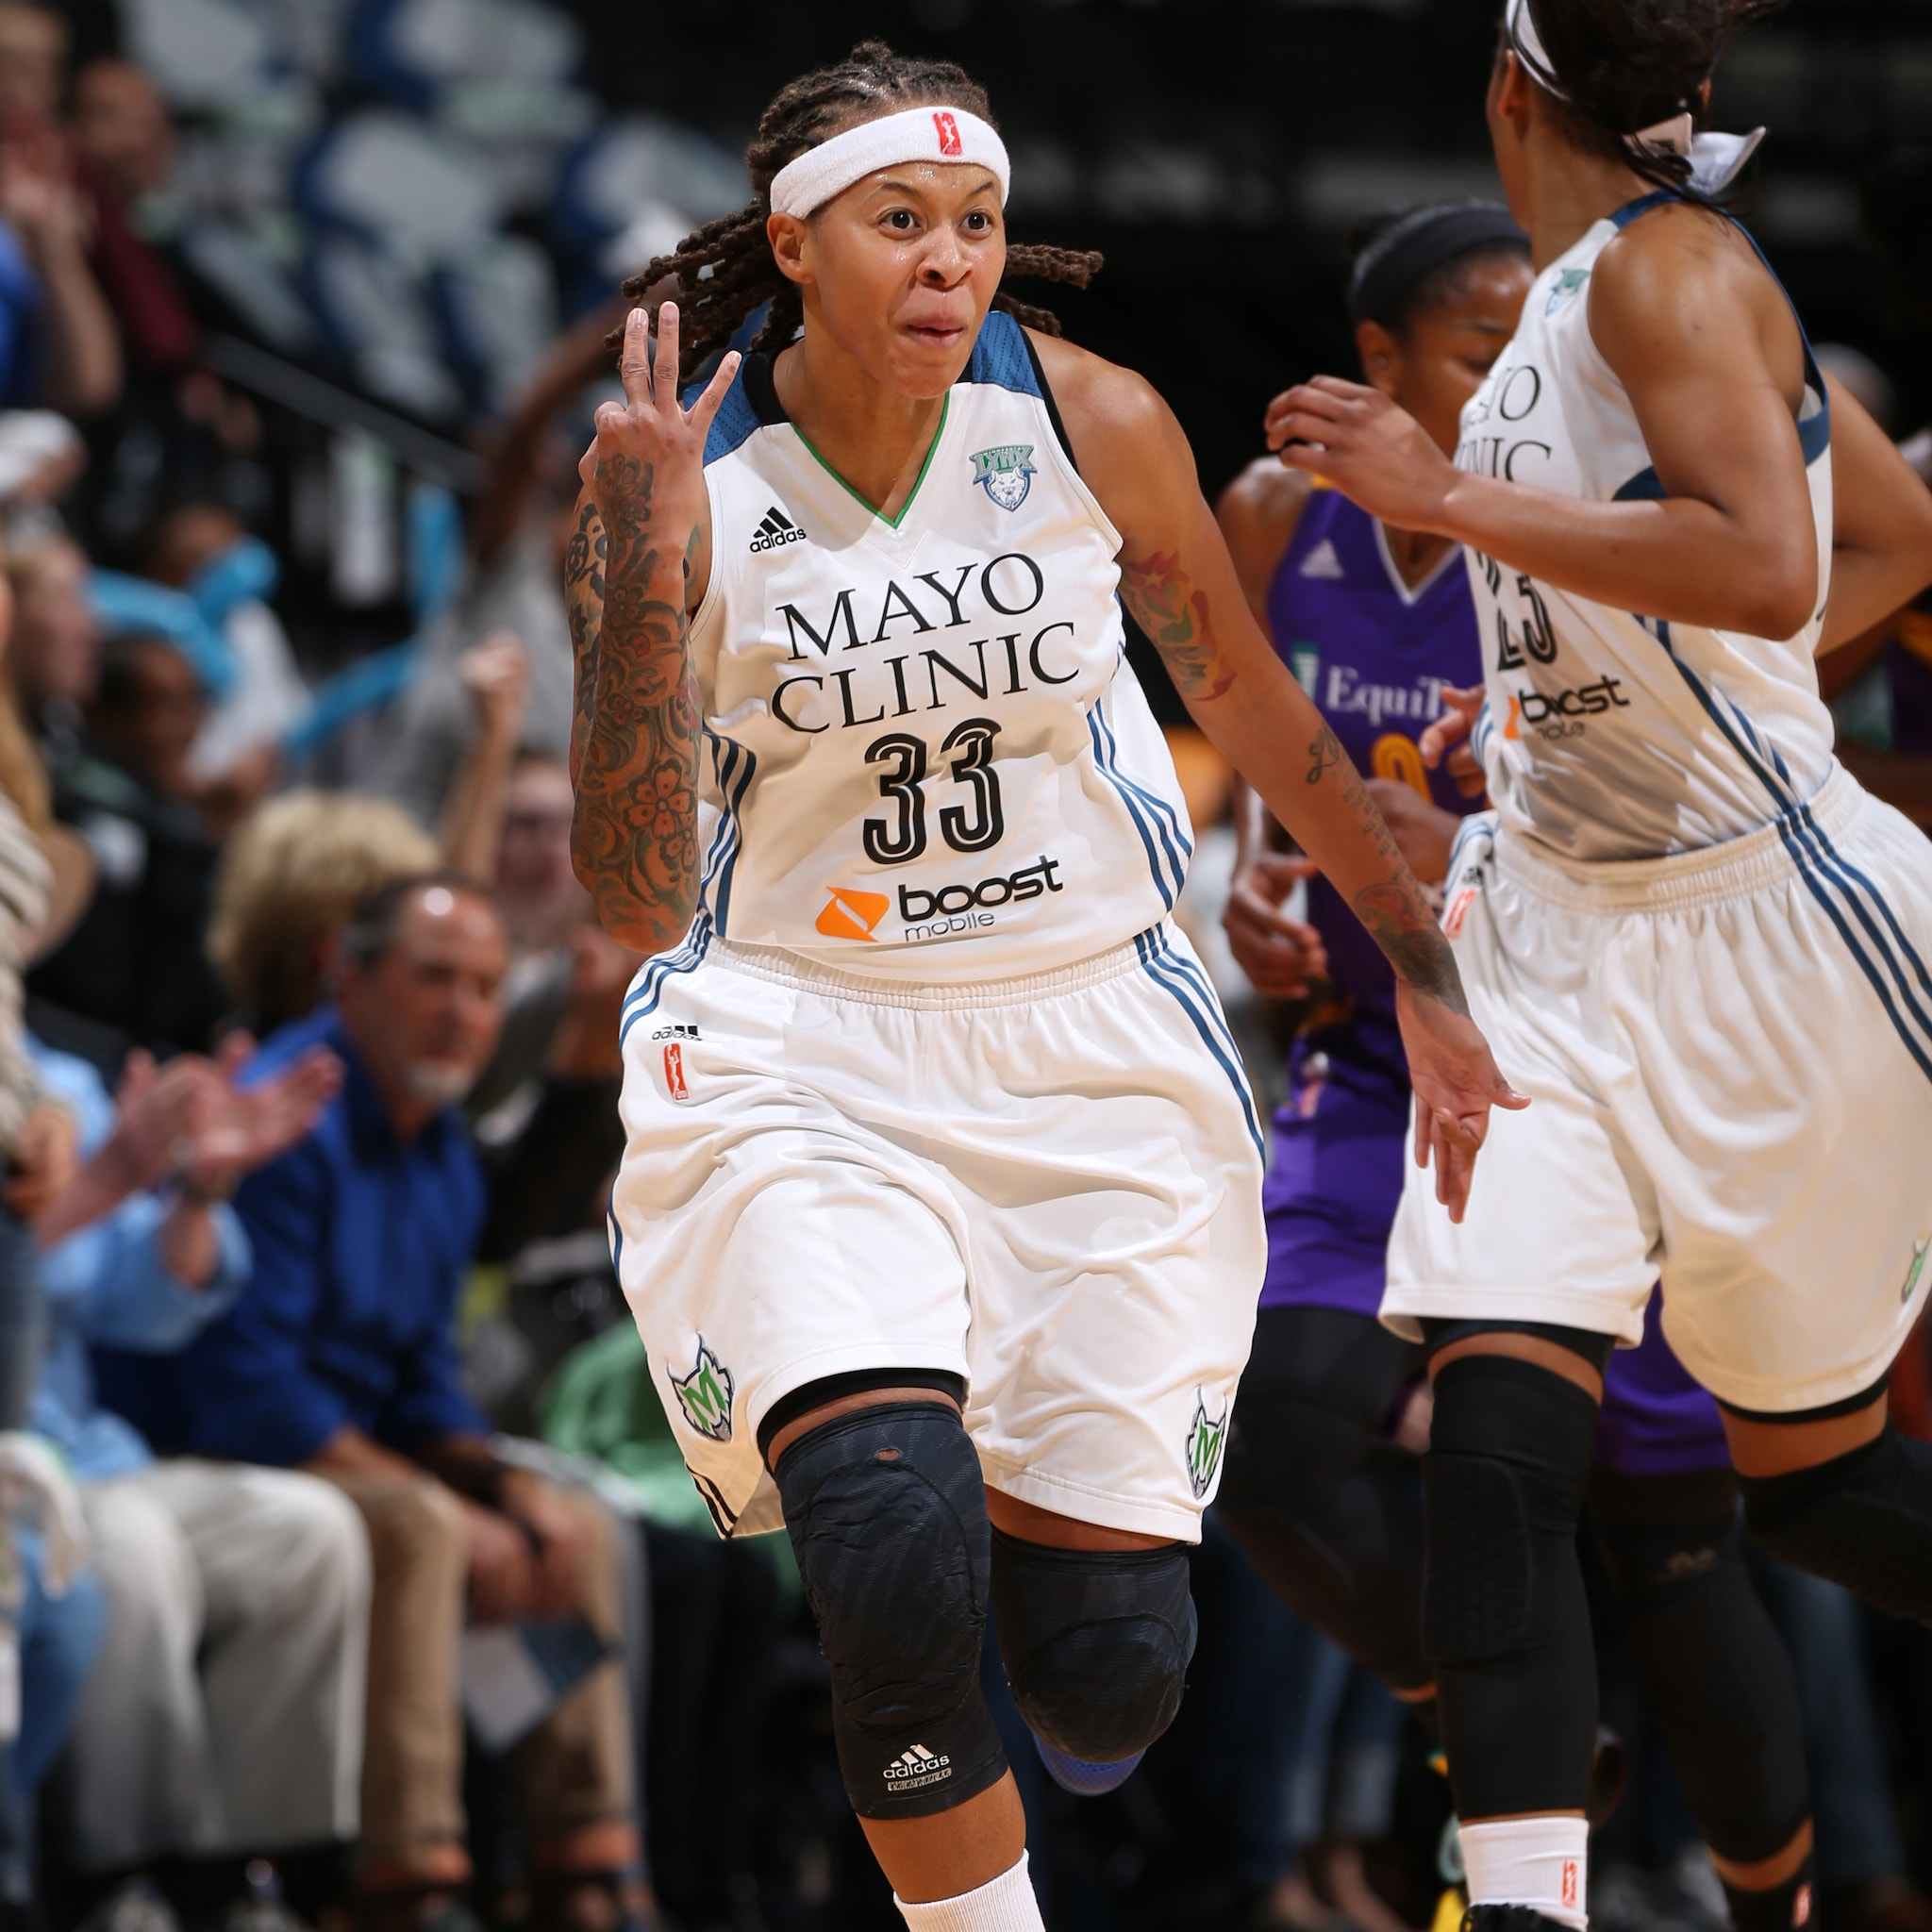 MINNEAPOLIS, MN - SEPTEMBER 18:  Seimone Augustus #33 of the Minnesota Lynx hits a three pointer during the game against the Los Angeles Sparks in Game 1 of the 2015 WNBA Western Conference Semifinal on September 18, 2015 at Target Center in Minneapolis, Minnesota.  NOTE TO USER: User expressly acknowledges and agrees that, by downloading and or using this Photograph, user is consenting to the terms and conditions of the Getty Images License Agreement. Mandatory Copyright Notice: Copyright 2015 NBAE (Photo by David Sherman/NBAE via Getty Images)